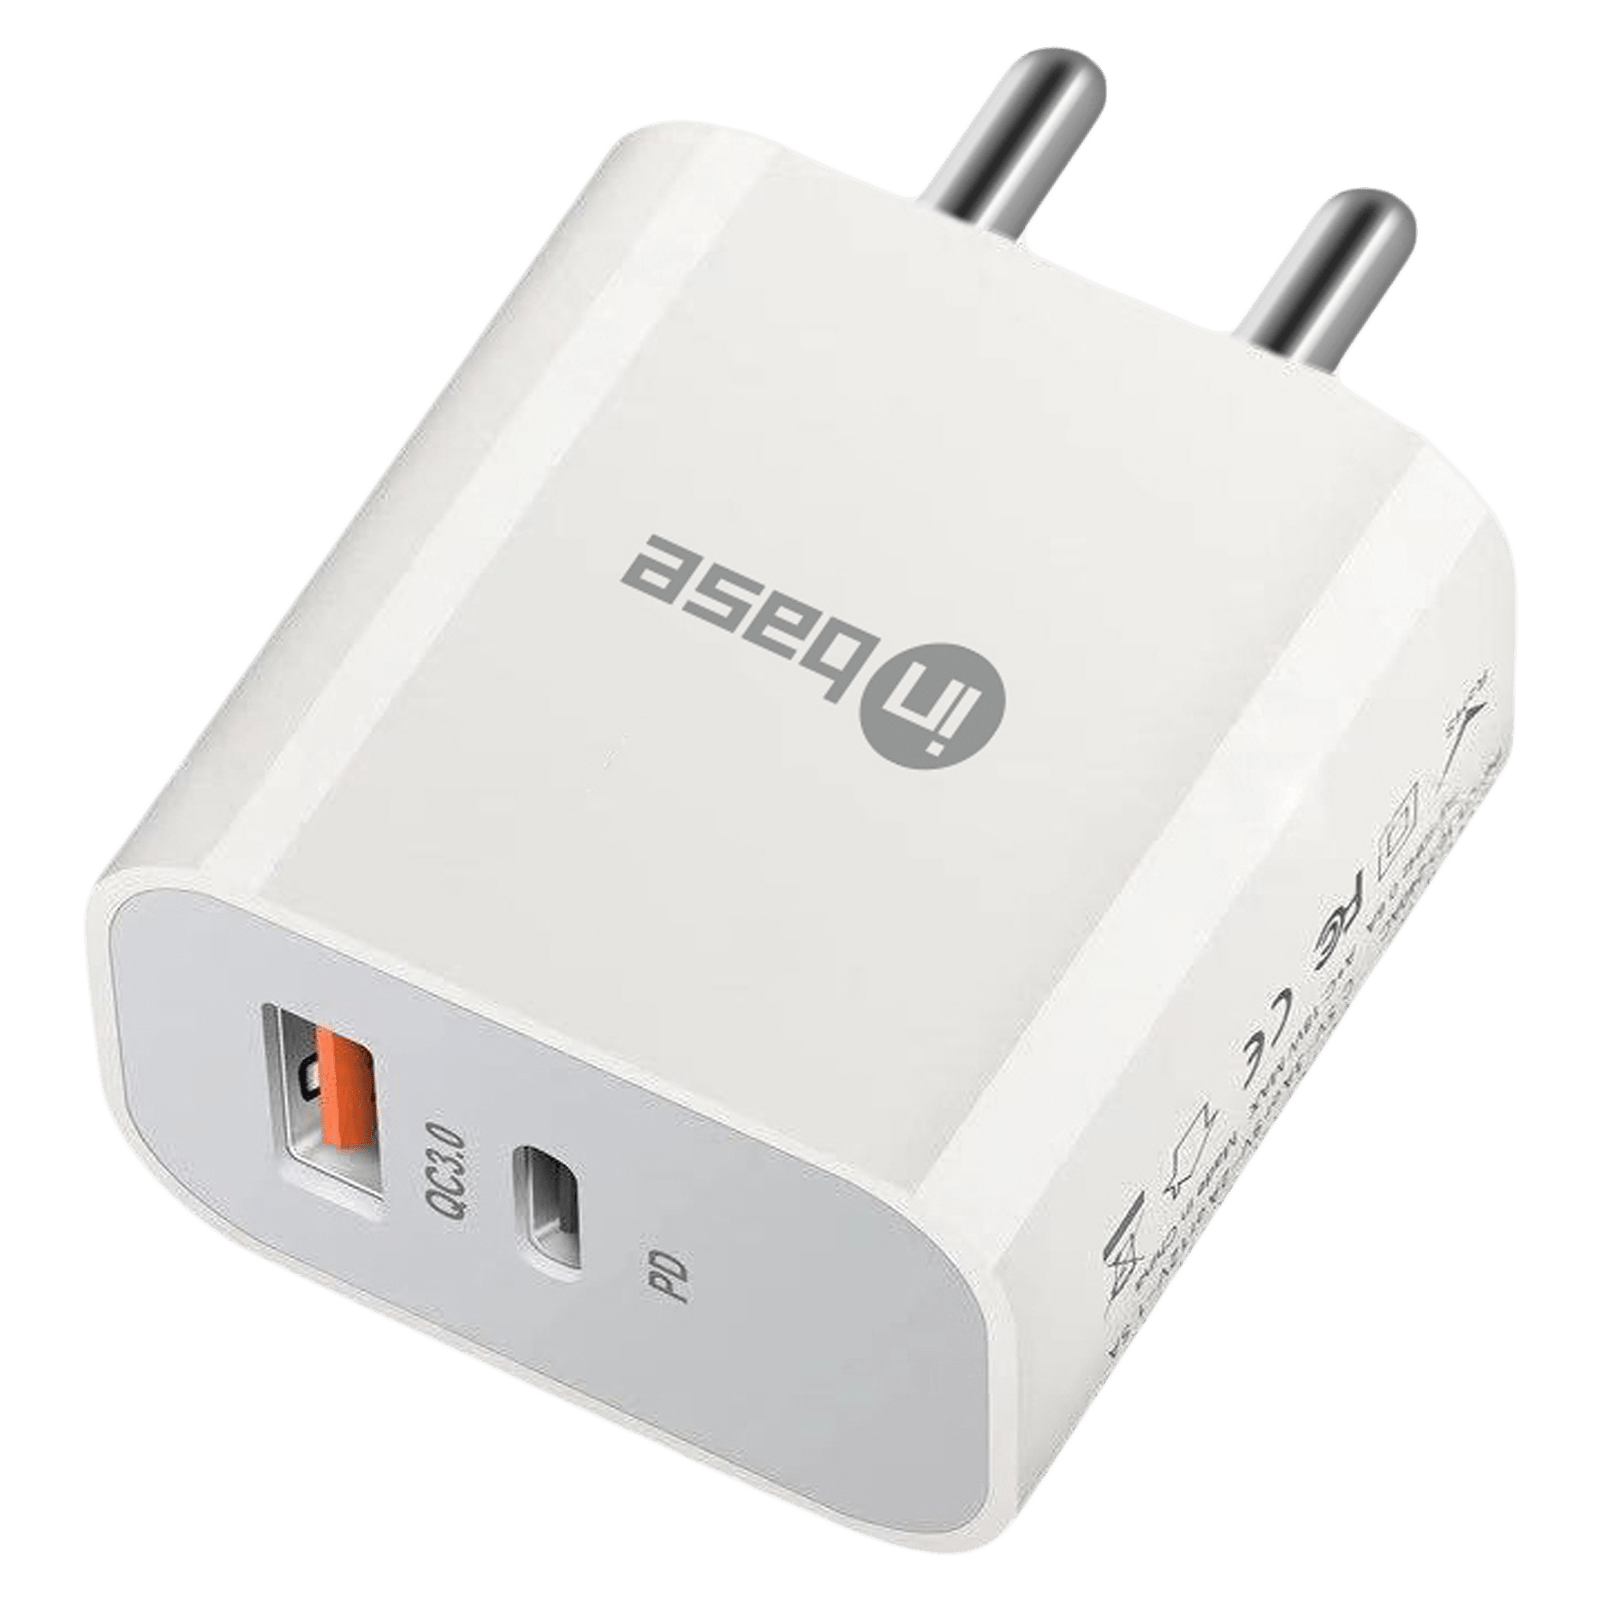 Inbase 20 Watts 2-Port USB Type-C and Power Delivery Wall Charging Adapter (Fast Charging Capability, IB-919, White)